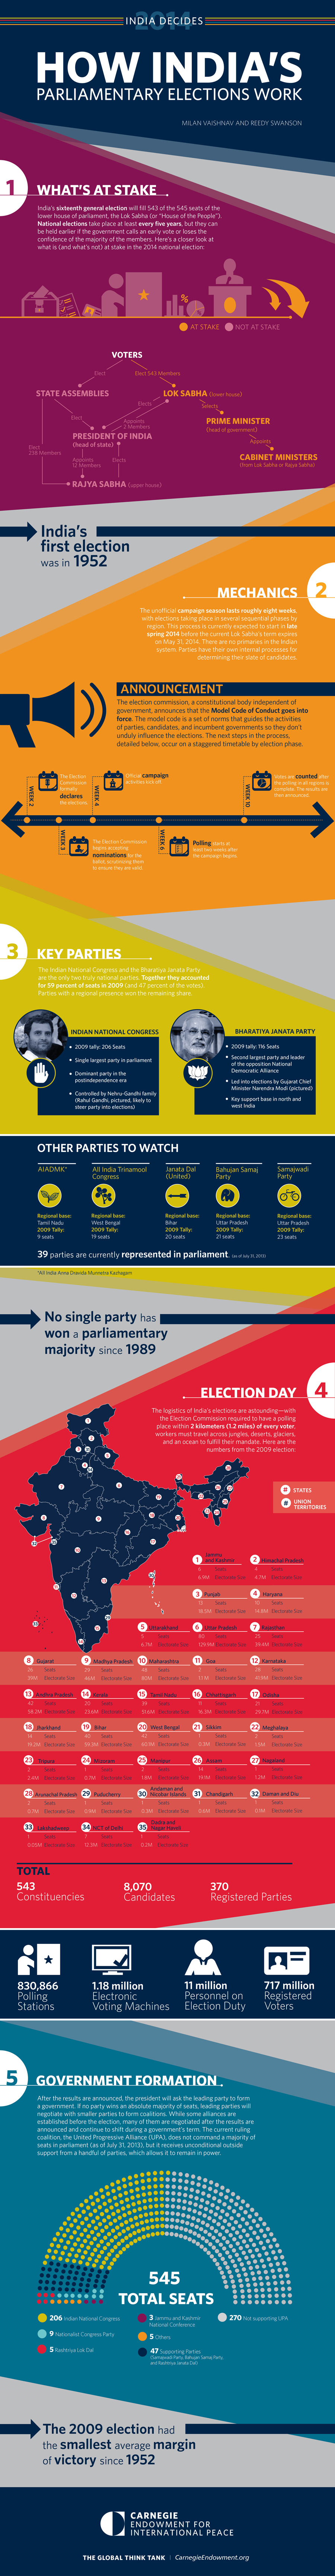 India is gearing up for the largest democratic exercise ever recorded—its 2014 parliamentary election. A new infographic explains what's at stake and how the system works.